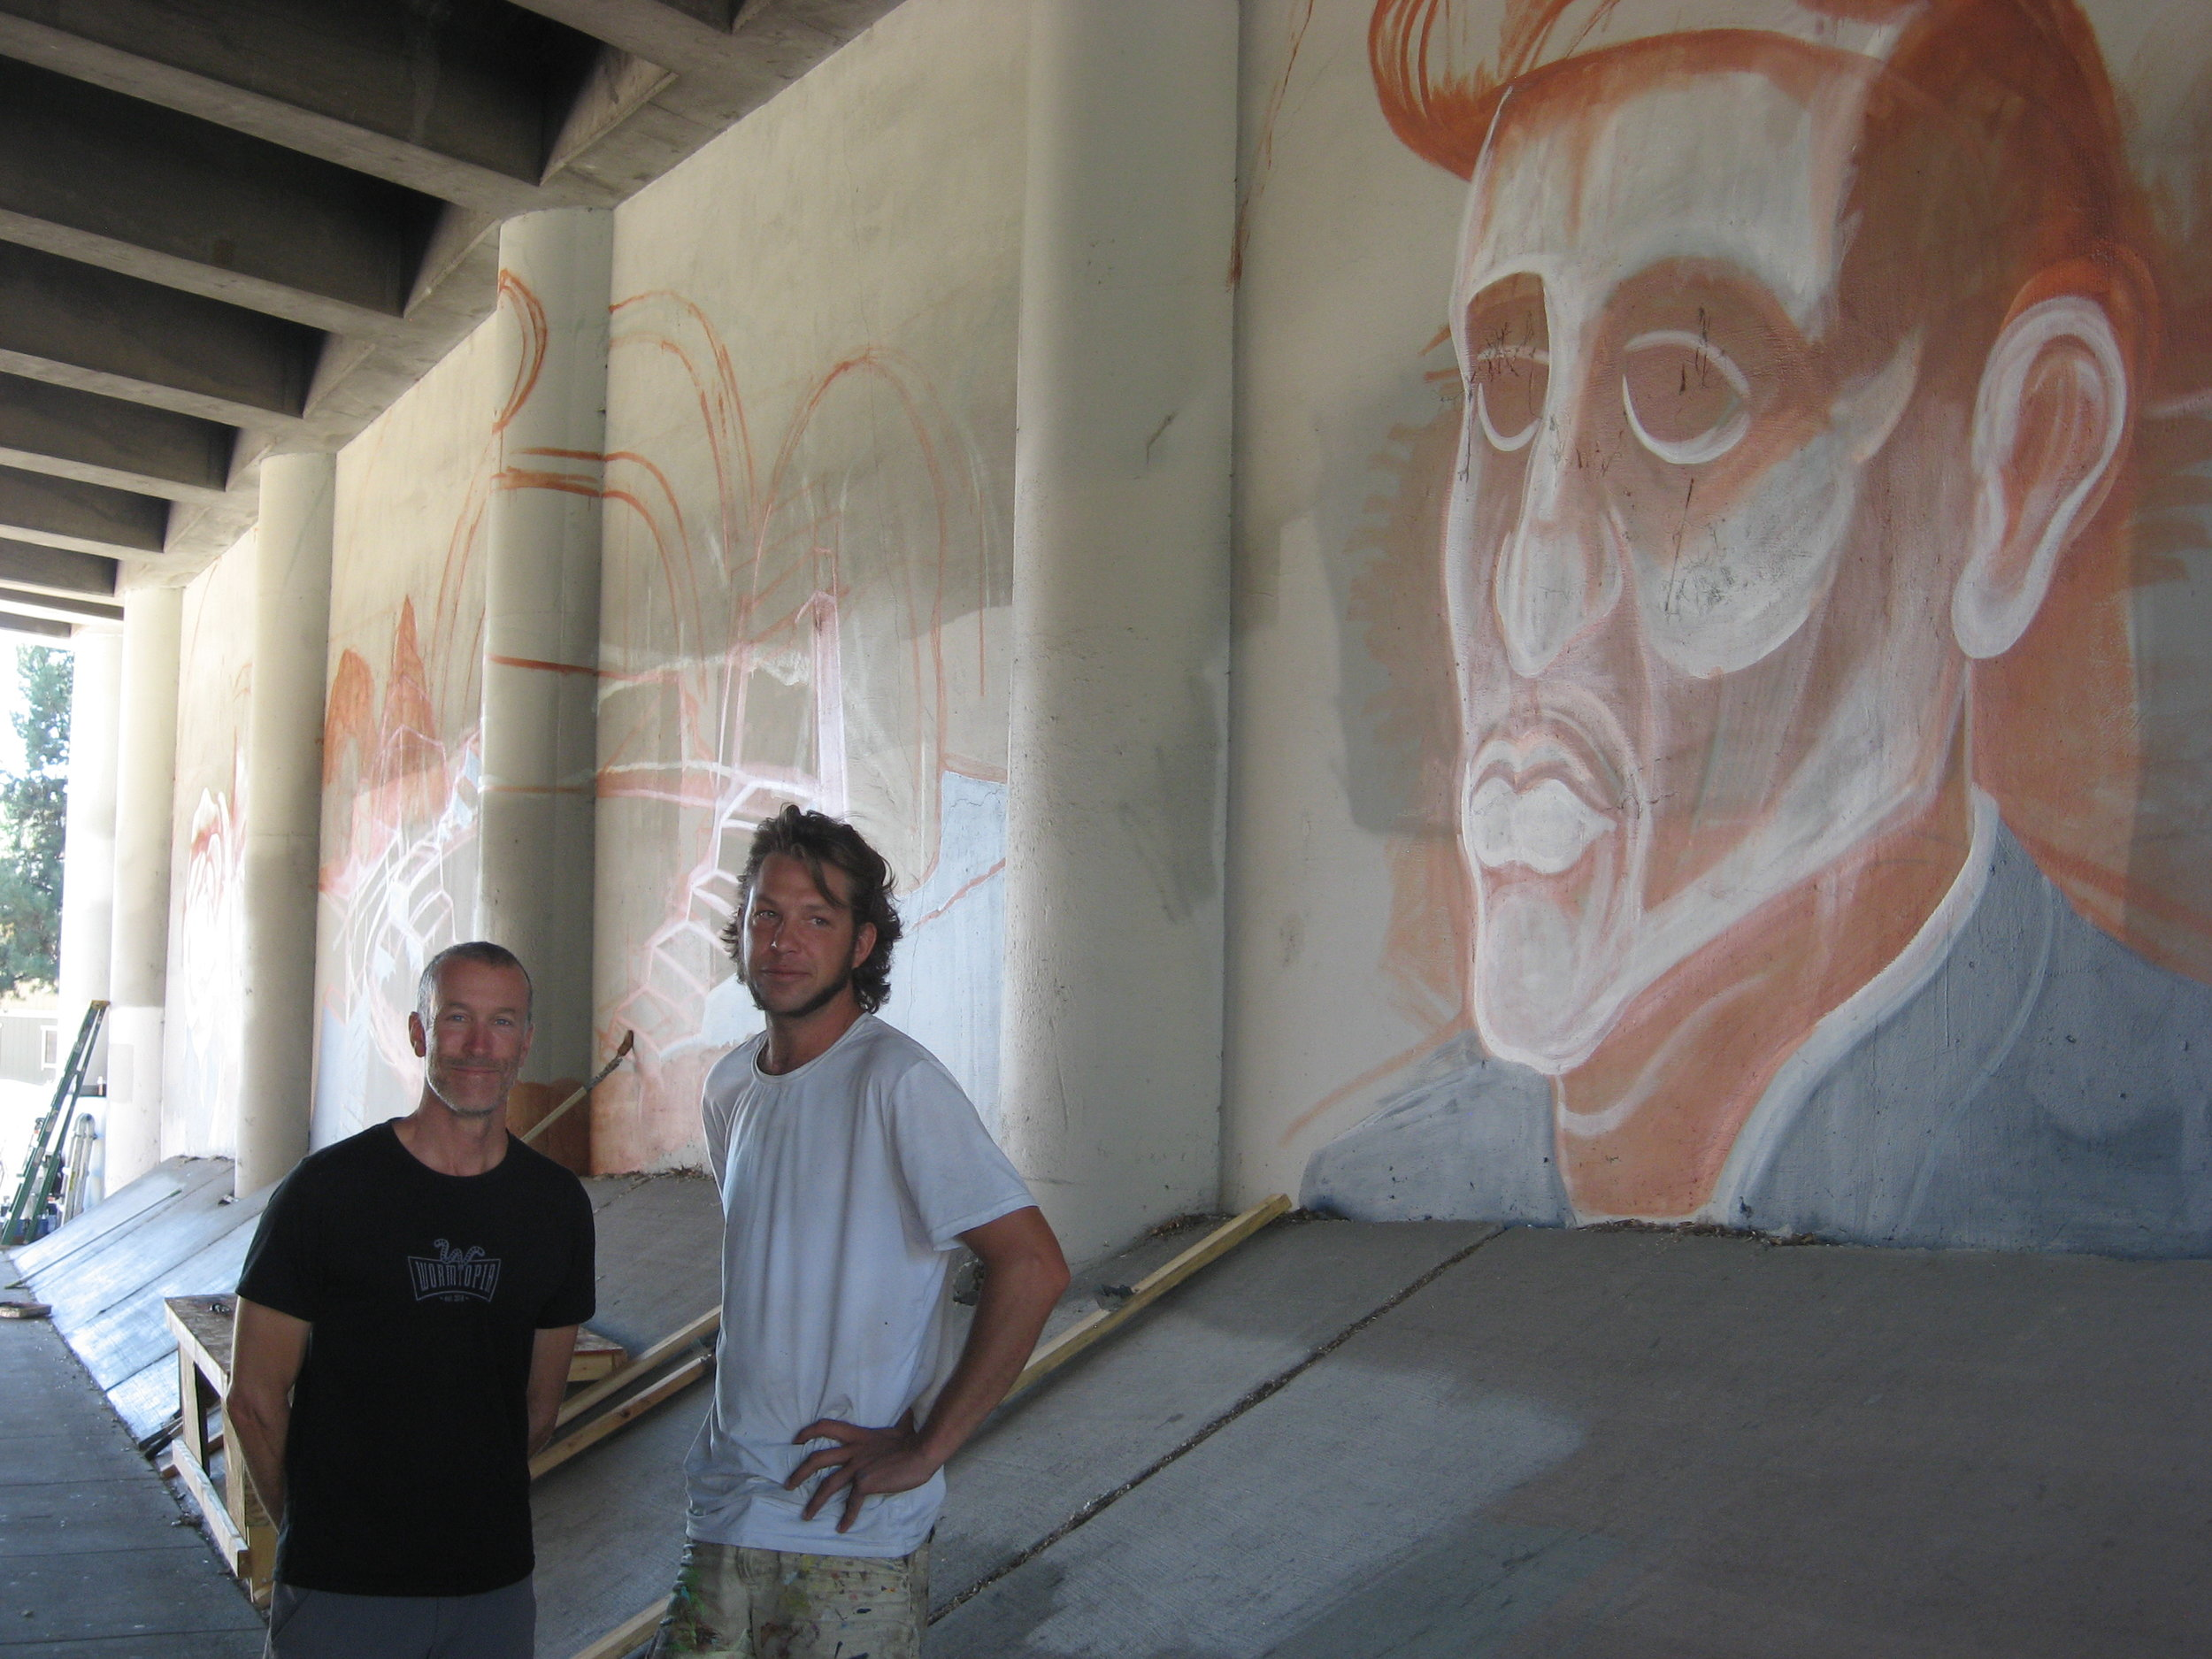 Kyle Chandler-Isacksen (left) and local artist Asa Kennedy are helping the Two Hands Collective complete a giant Day of the Dead mural inside the 395/Wedekind Road underpass. The project started later than expected, and now the aim is to finish by the end of October.